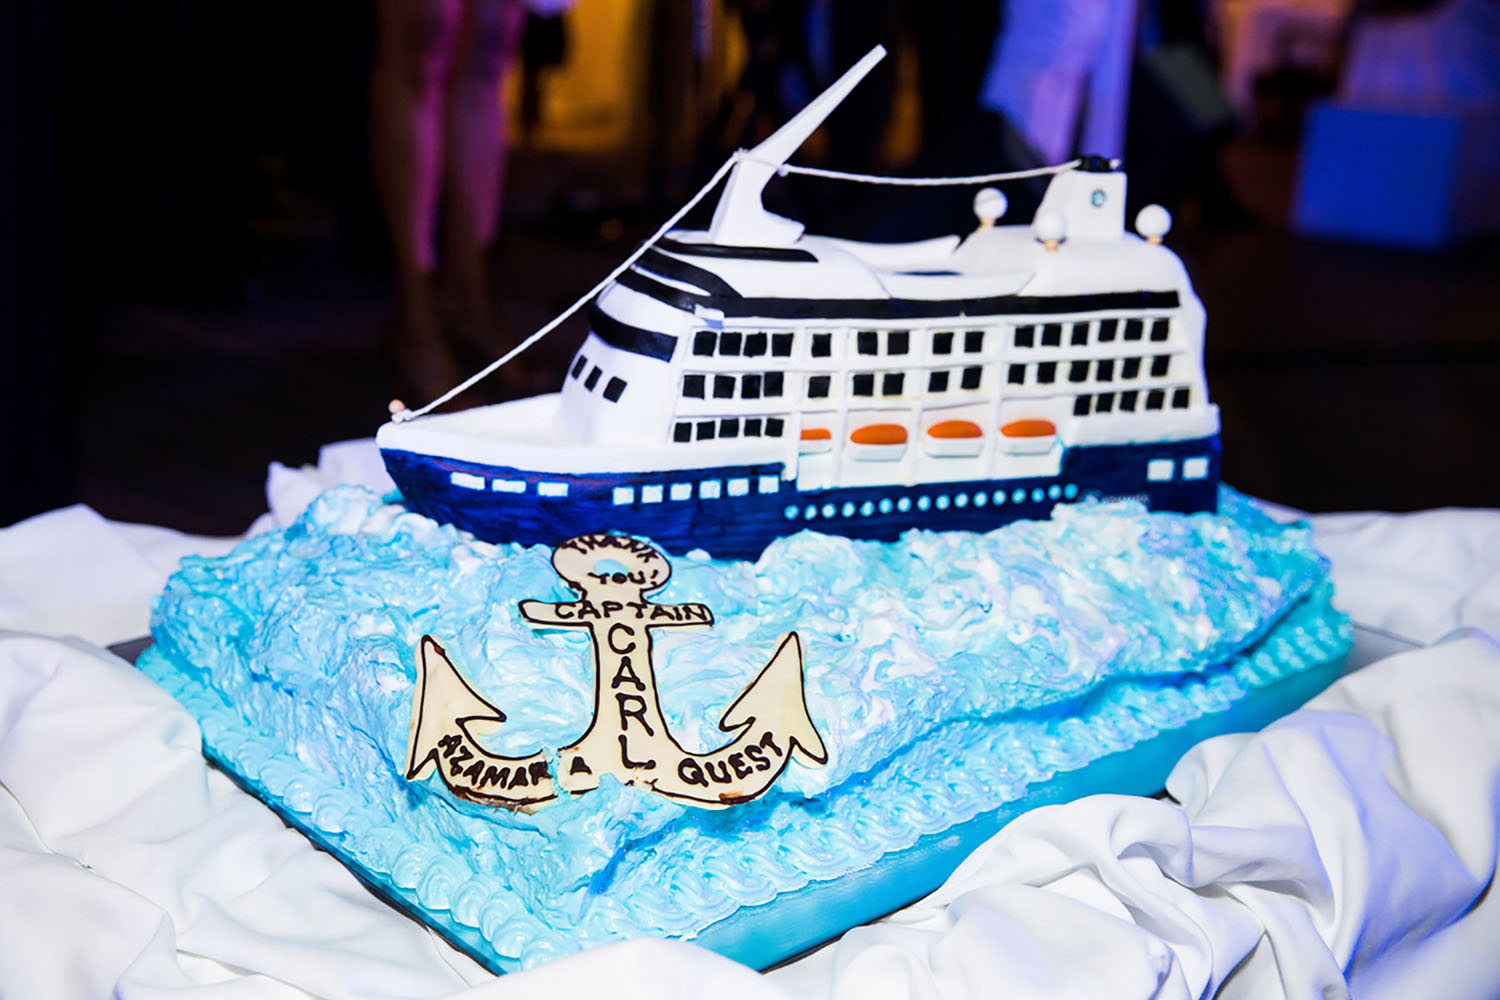 A special Azamara cruise ship cake for Captain Carl.